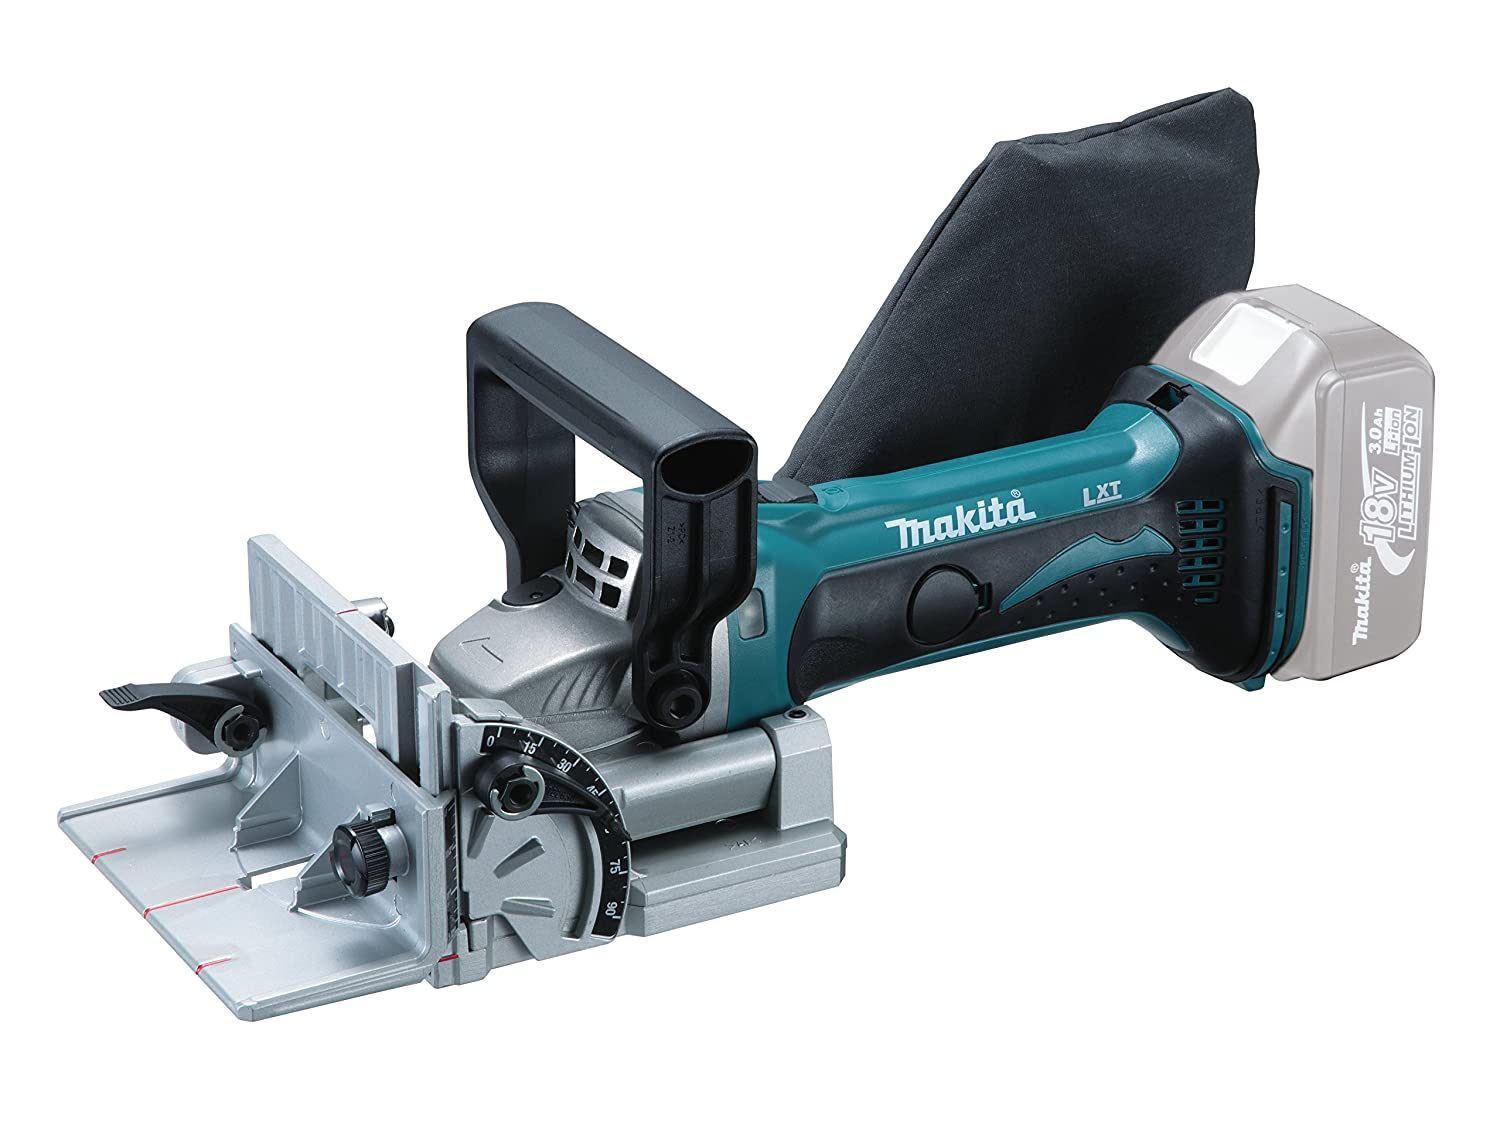 18 V Makita DPJ180ZJ Engalletadora